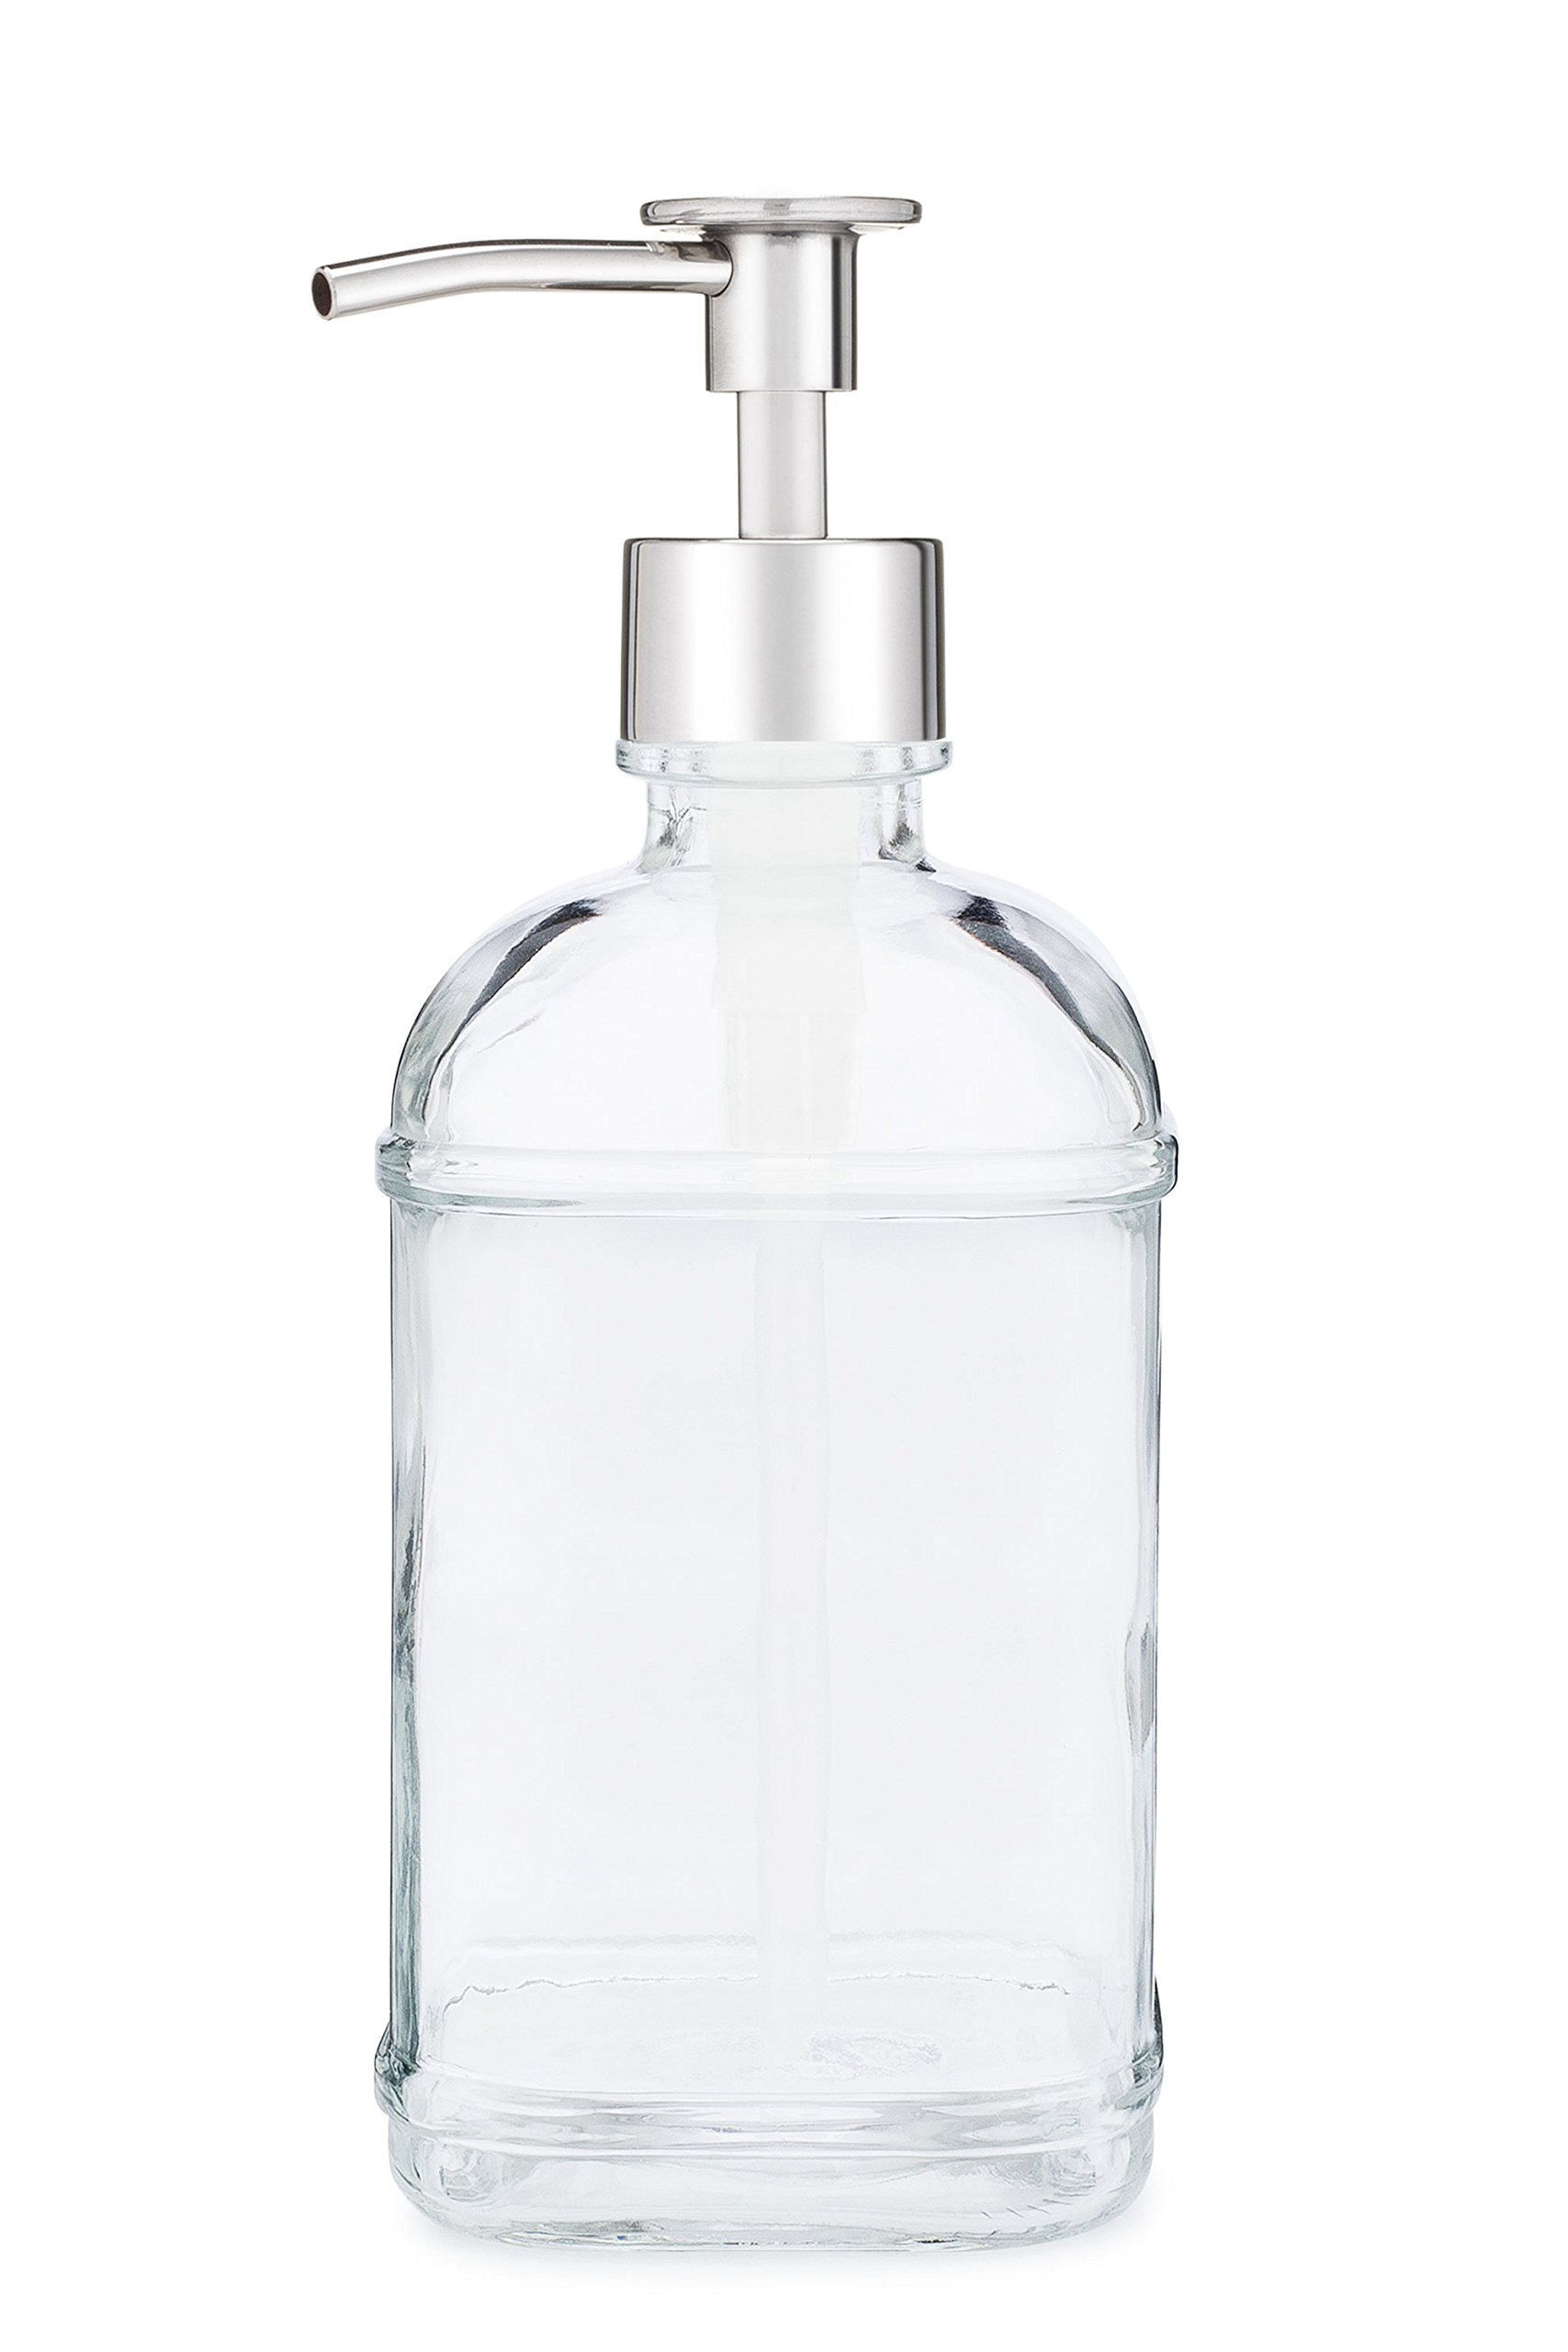 Rail19 Catalina Glass Soap Dispenser Liquid Hand Soap Pump for The Kitchen and Bathroom Sink - Great for Dish Soap, Hand Soap and Hand Lotion (Luxe Chrome)